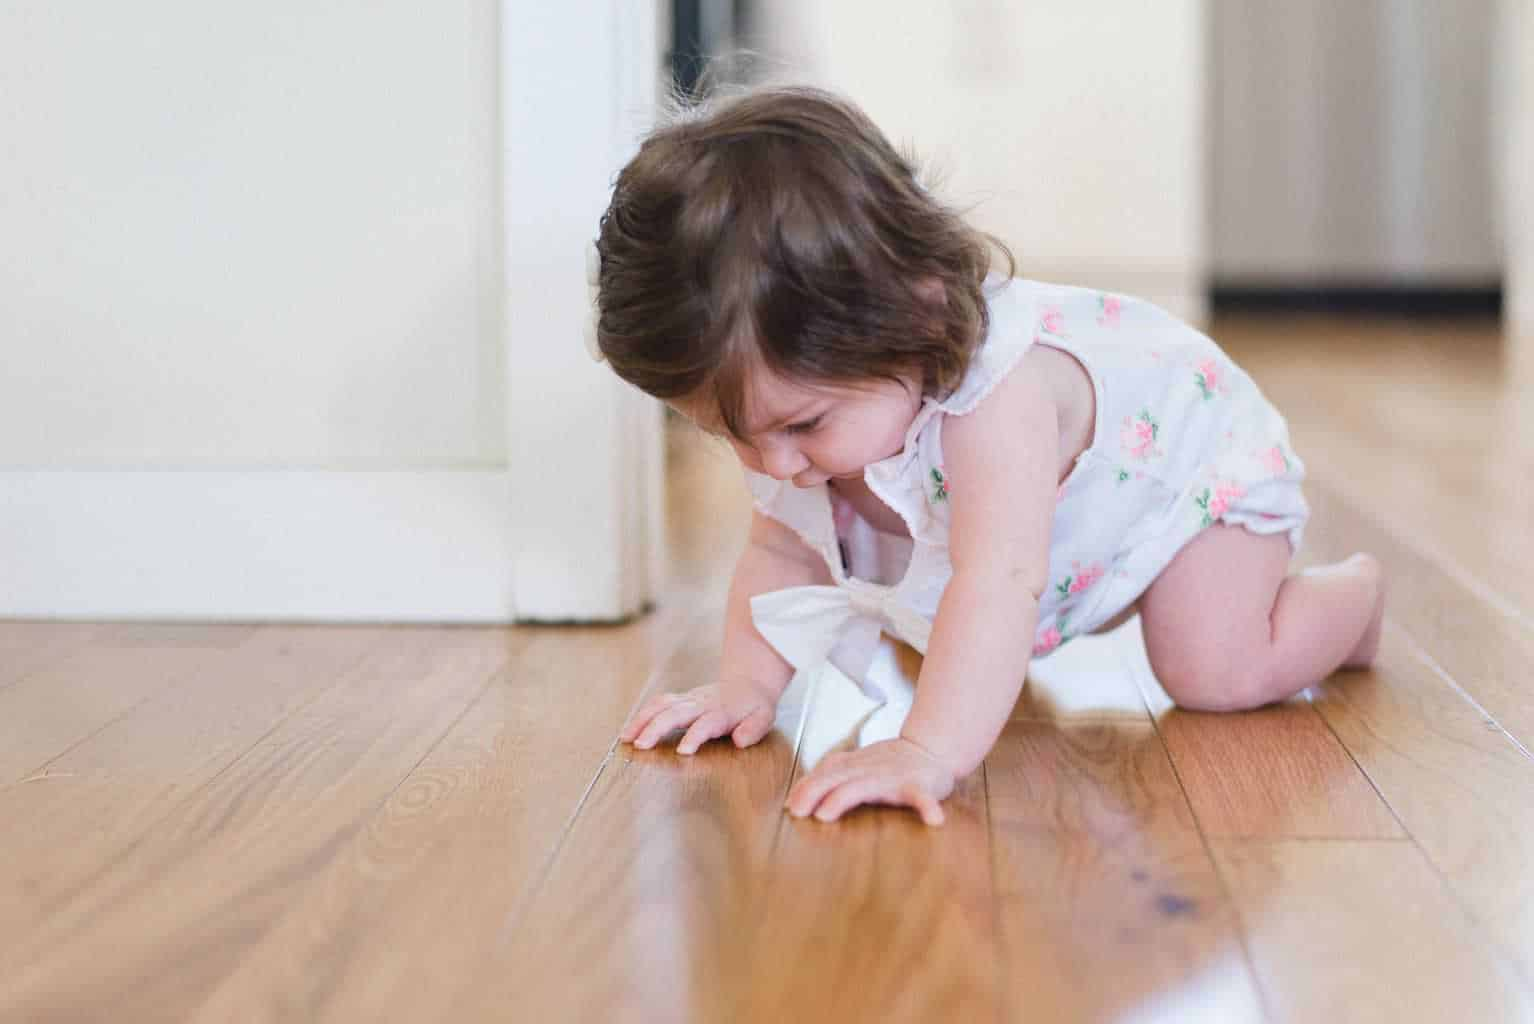 Top tips to baby-proof your home from Safety 1st